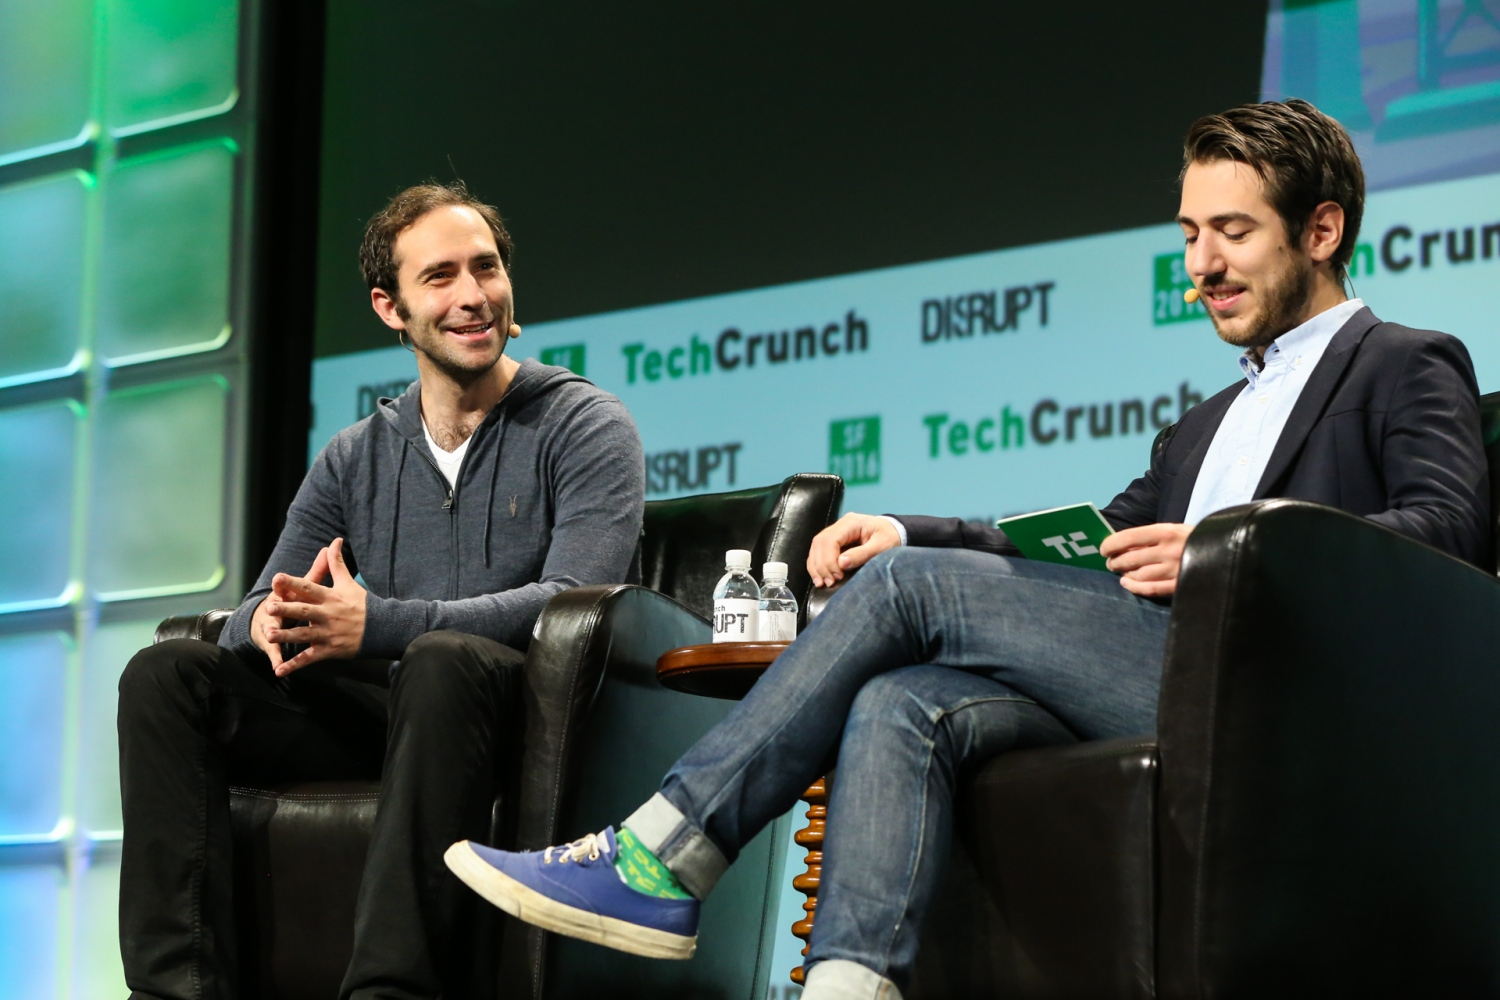 Twitch co-founder discusses the site's efforts to move